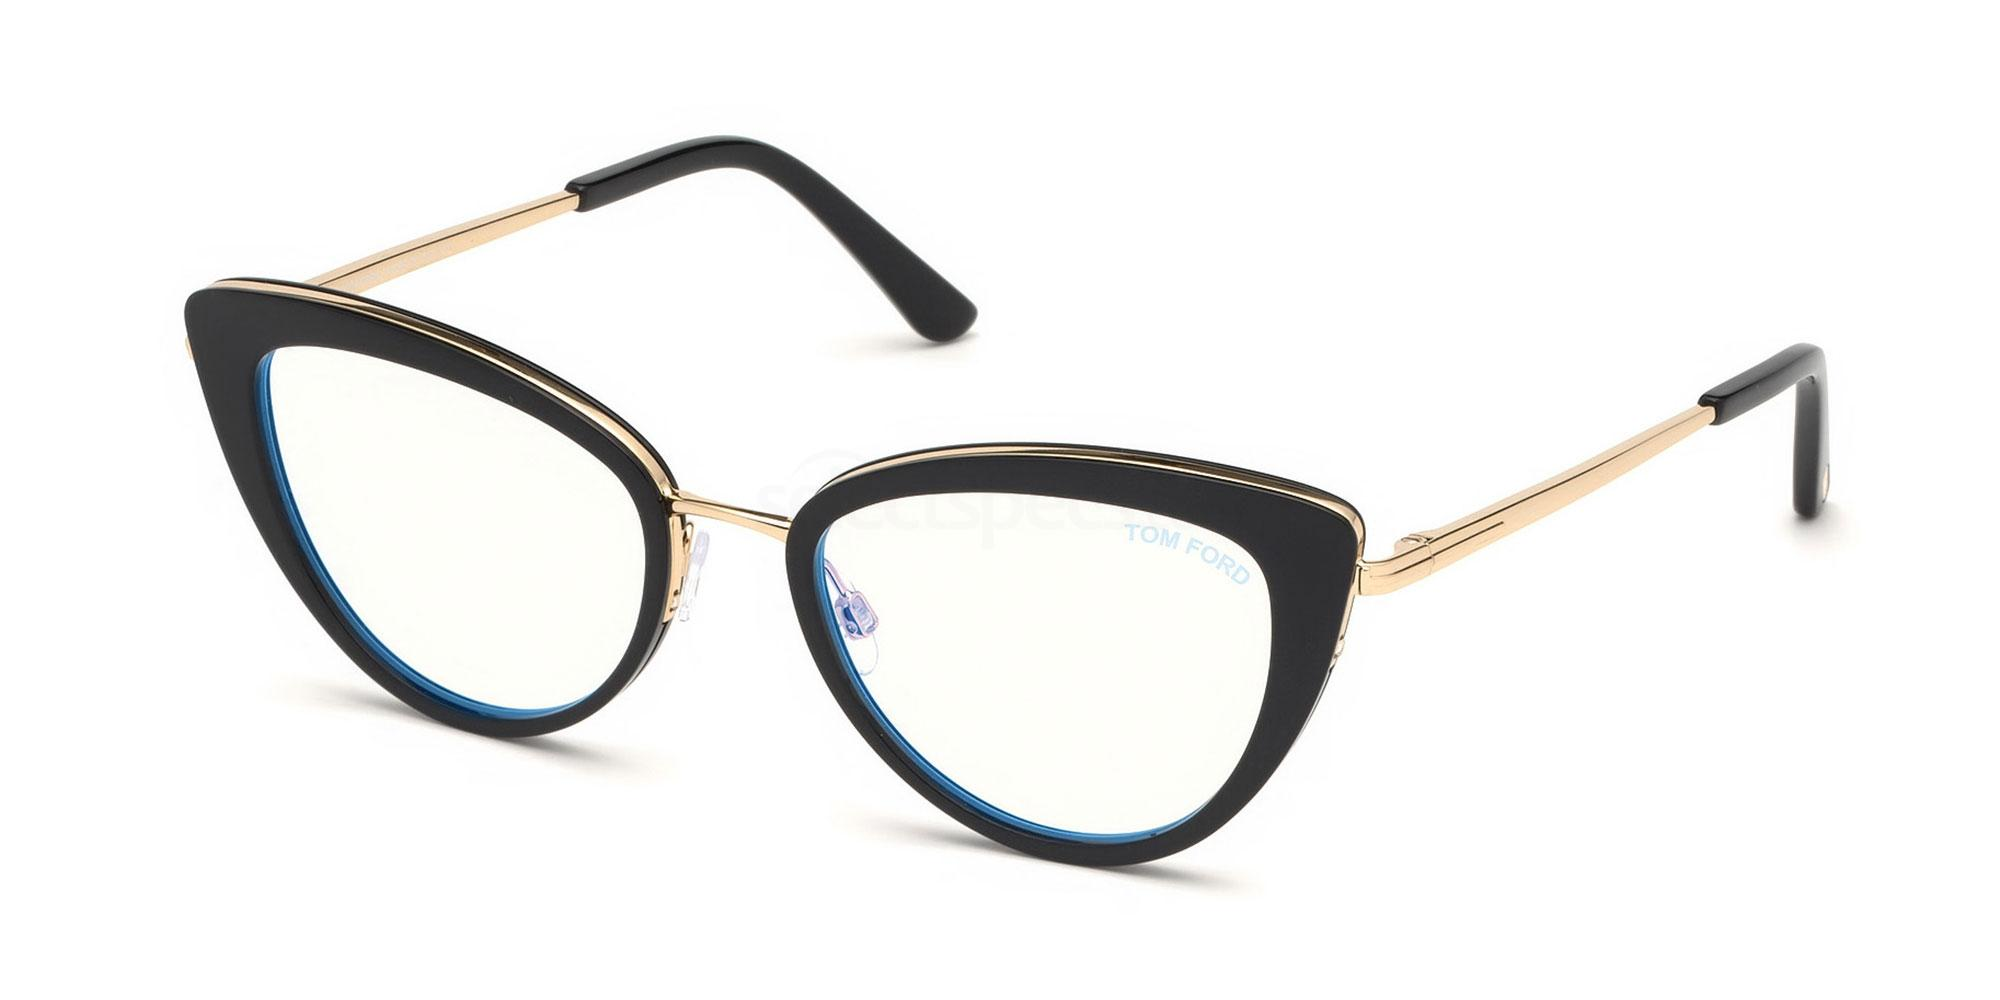 001 FT5580-B Glasses, Tom Ford